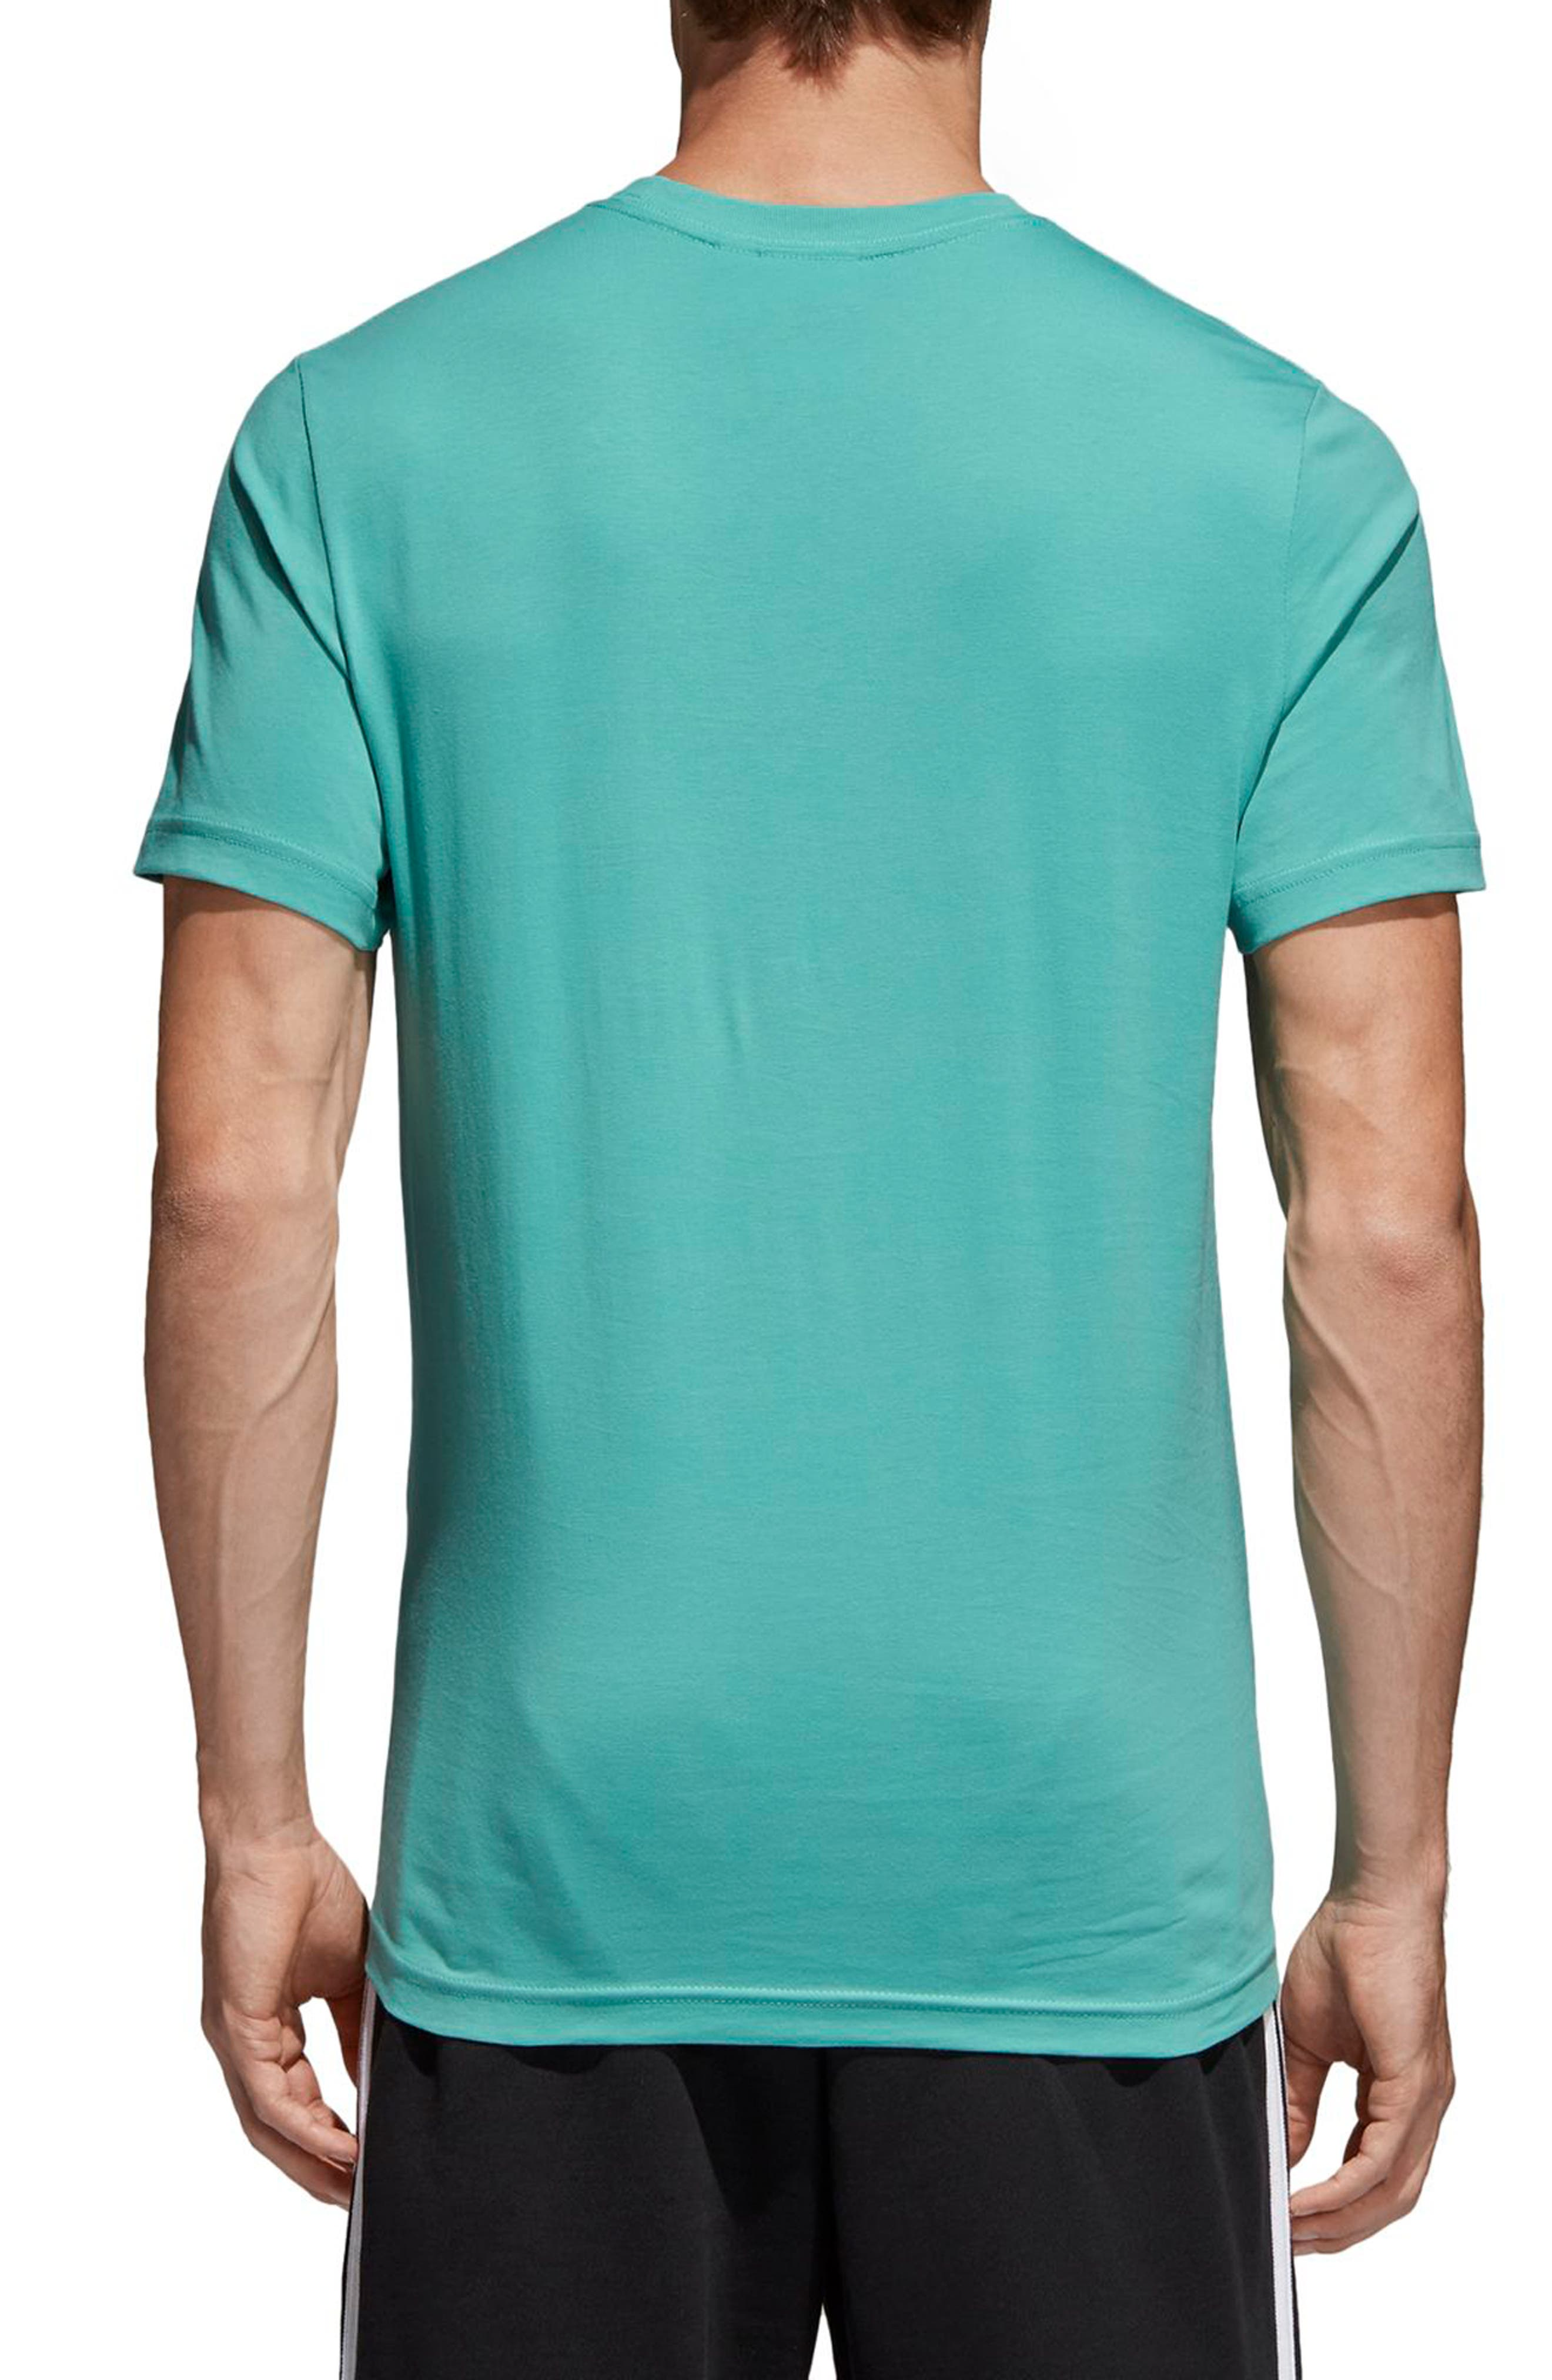 Commercial Graphic T-Shirt,                             Alternate thumbnail 2, color,                             ST FADE OCEAN S14